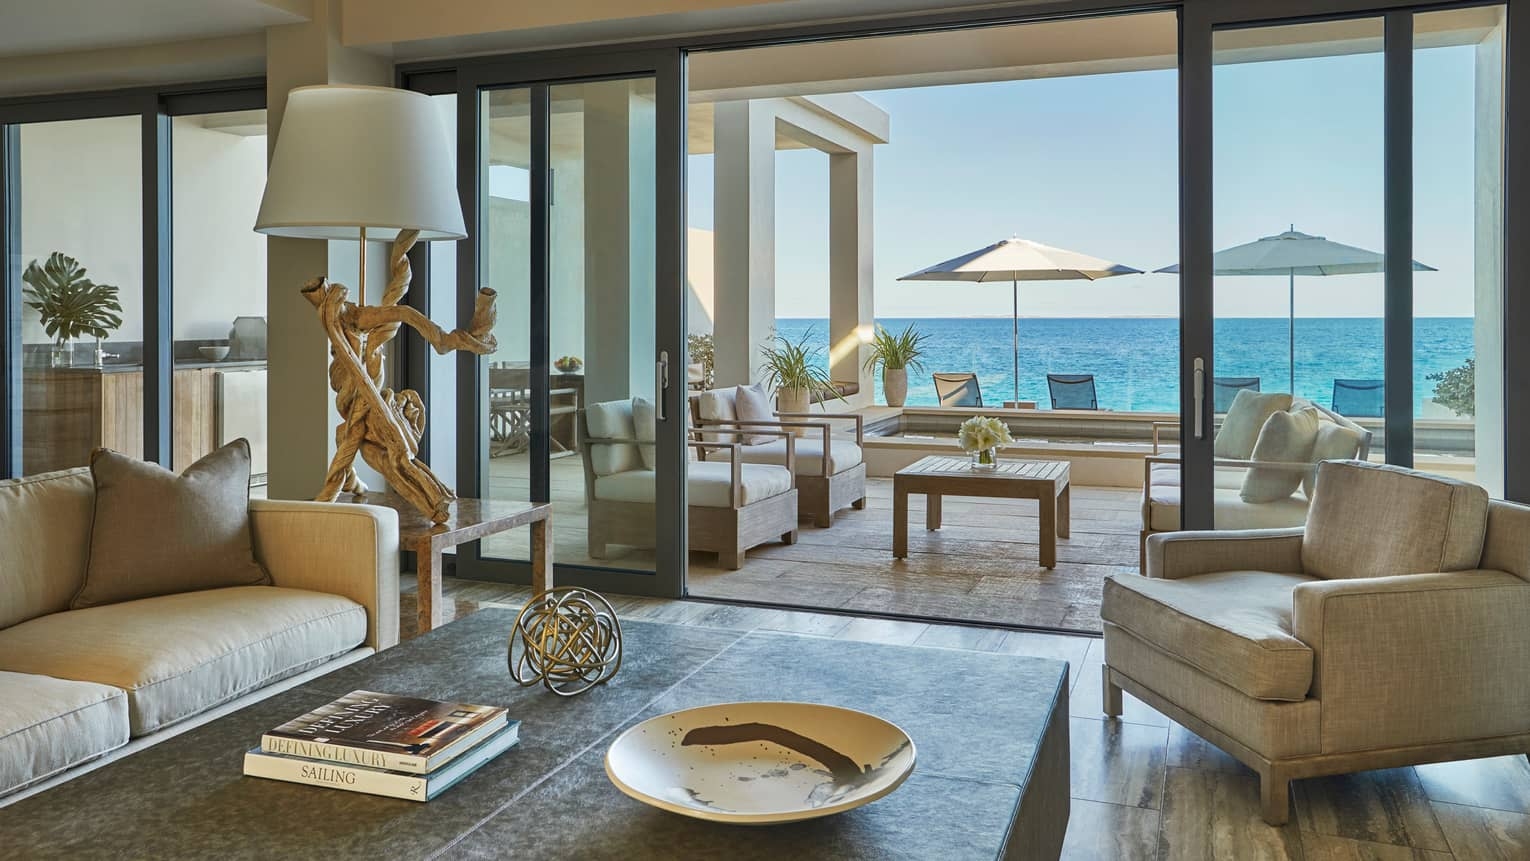 View from inside to indoor-outdoor living rooms with sofas, chairs, patio umbrellas and ocean in background